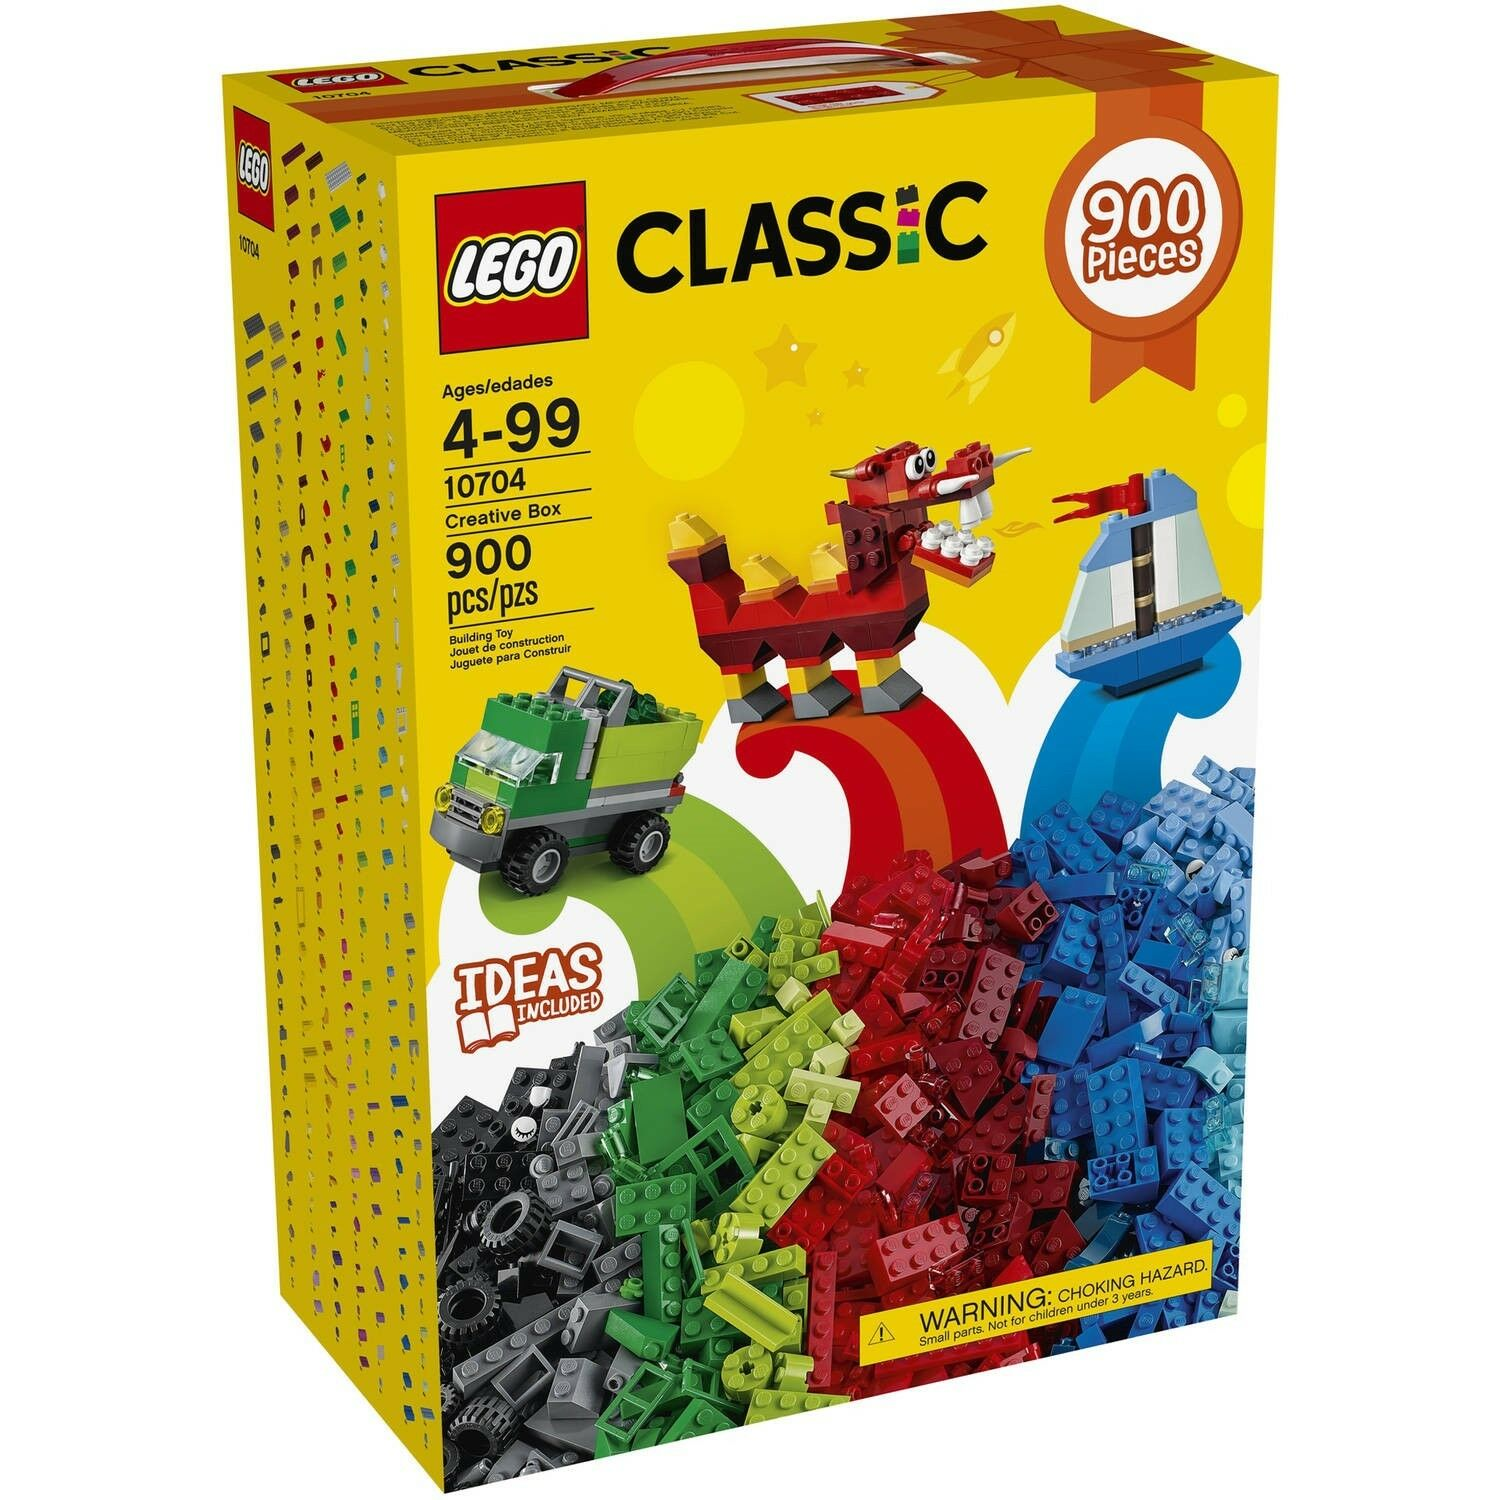 LEGO CLASSIC 900 PIECES SET NEW 10704 CREATIVE BOX IDEAS INCLUDED